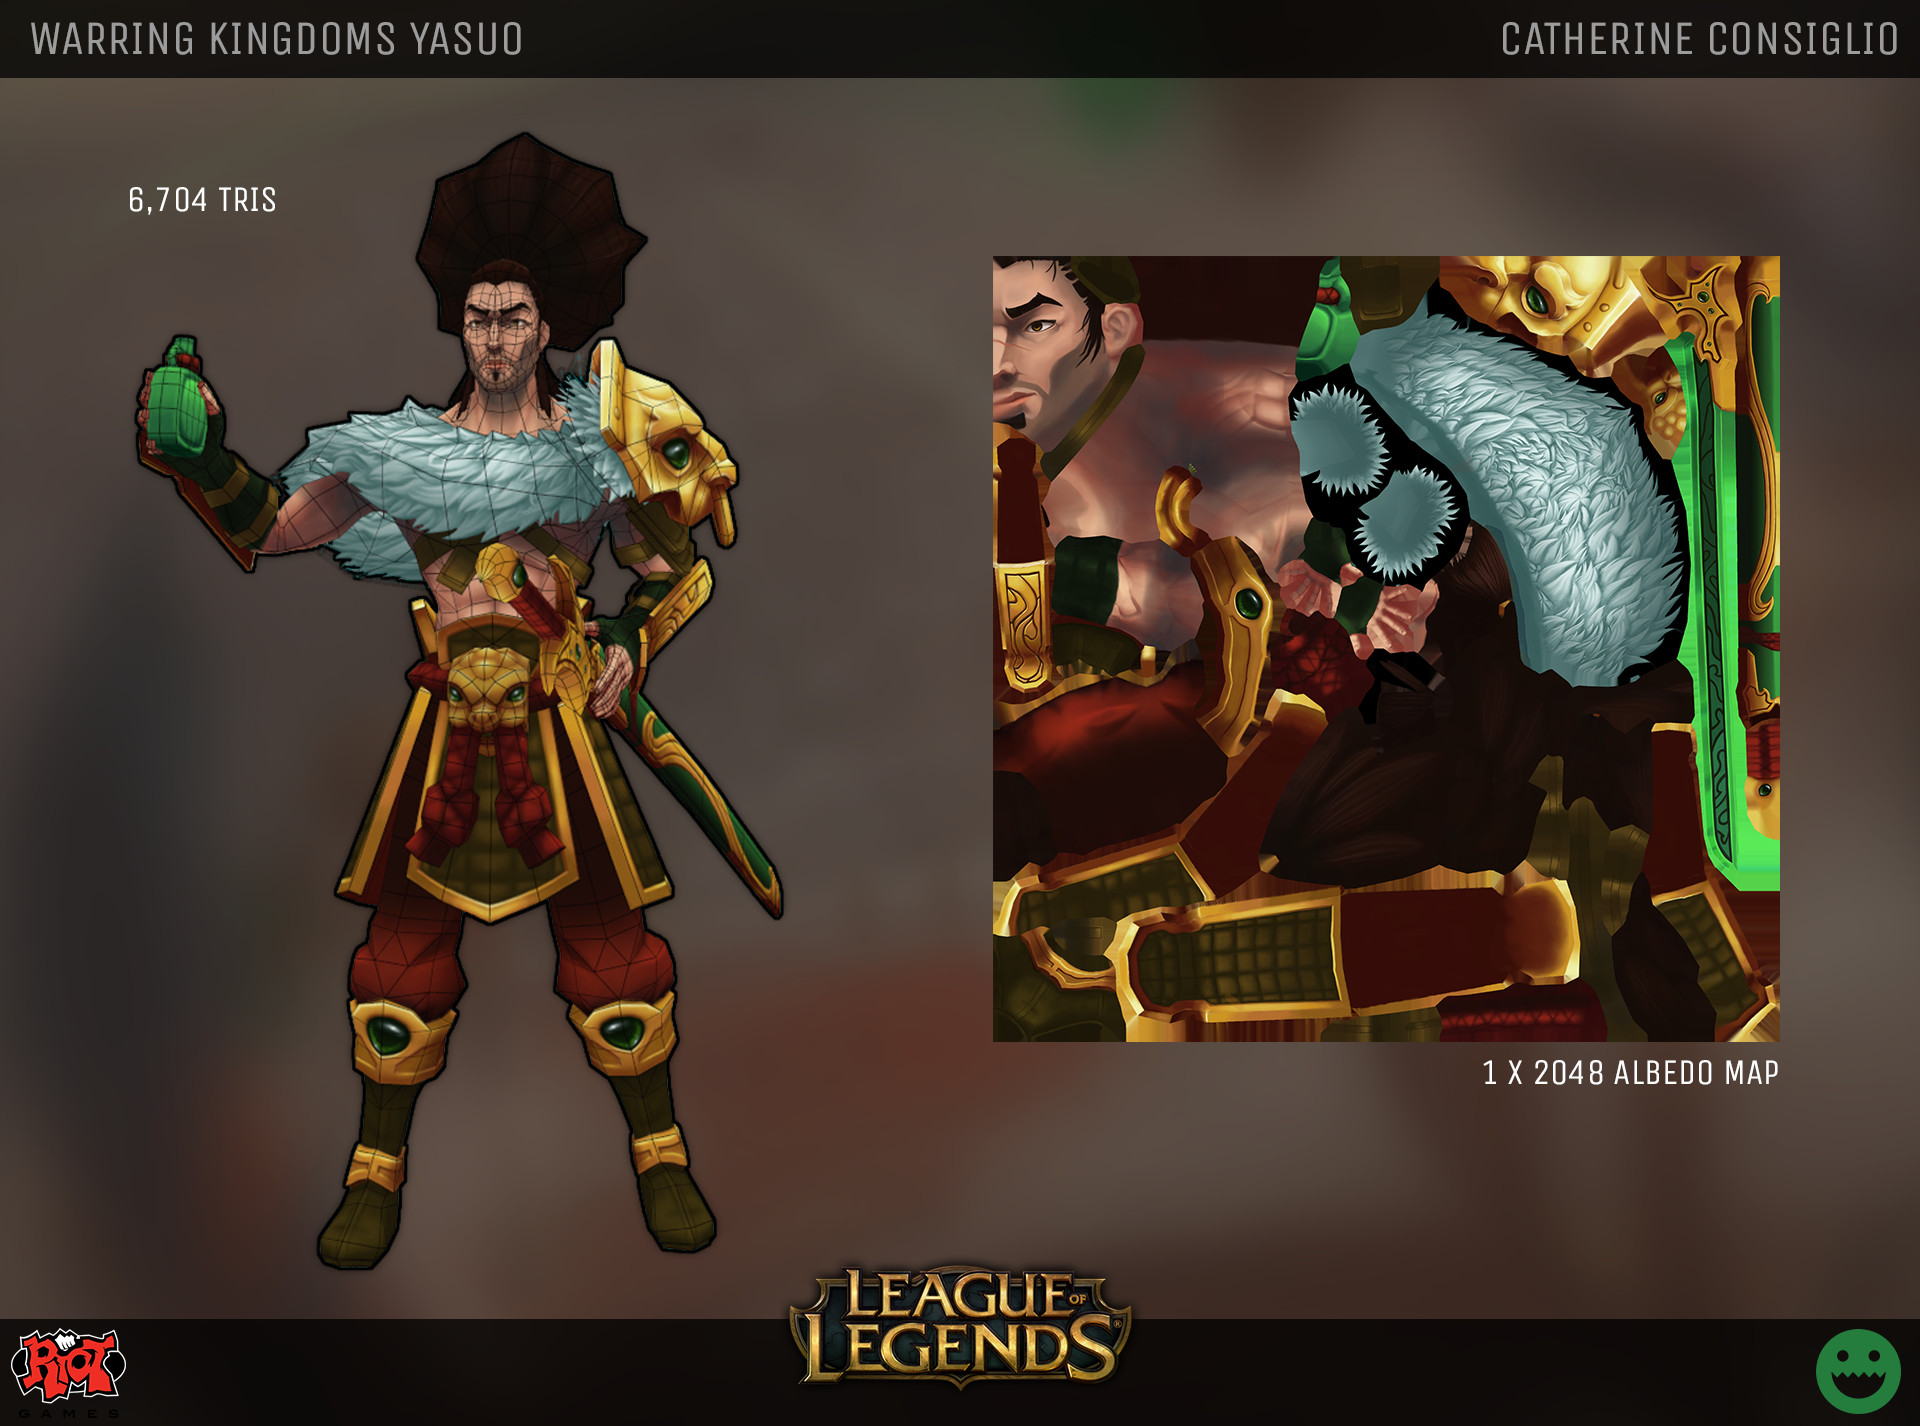 Catherine consiglio catherine consiglio warring kingdoms yasuo riot polycount challenge p2